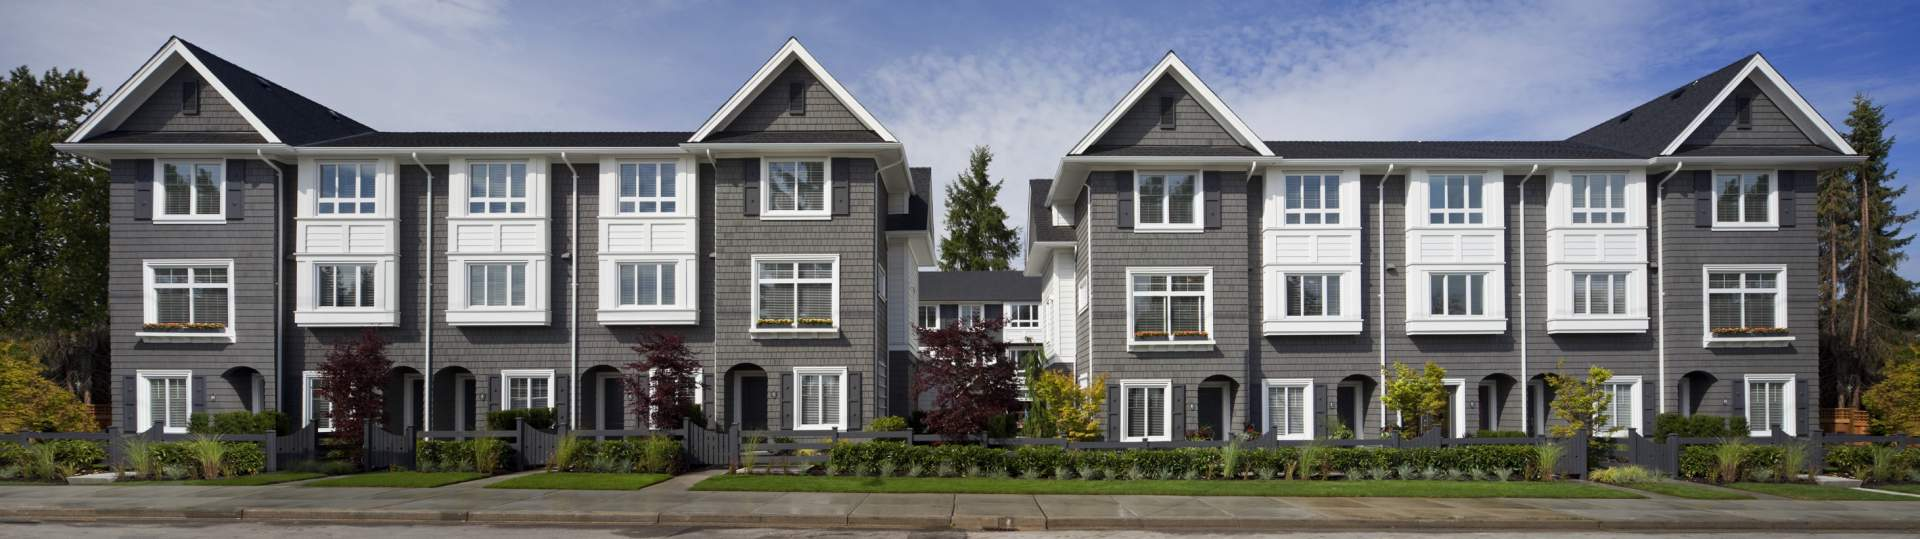 Fleetwood Village Townhomes By Dawson + Sawyer – Prices, Availability, Plans